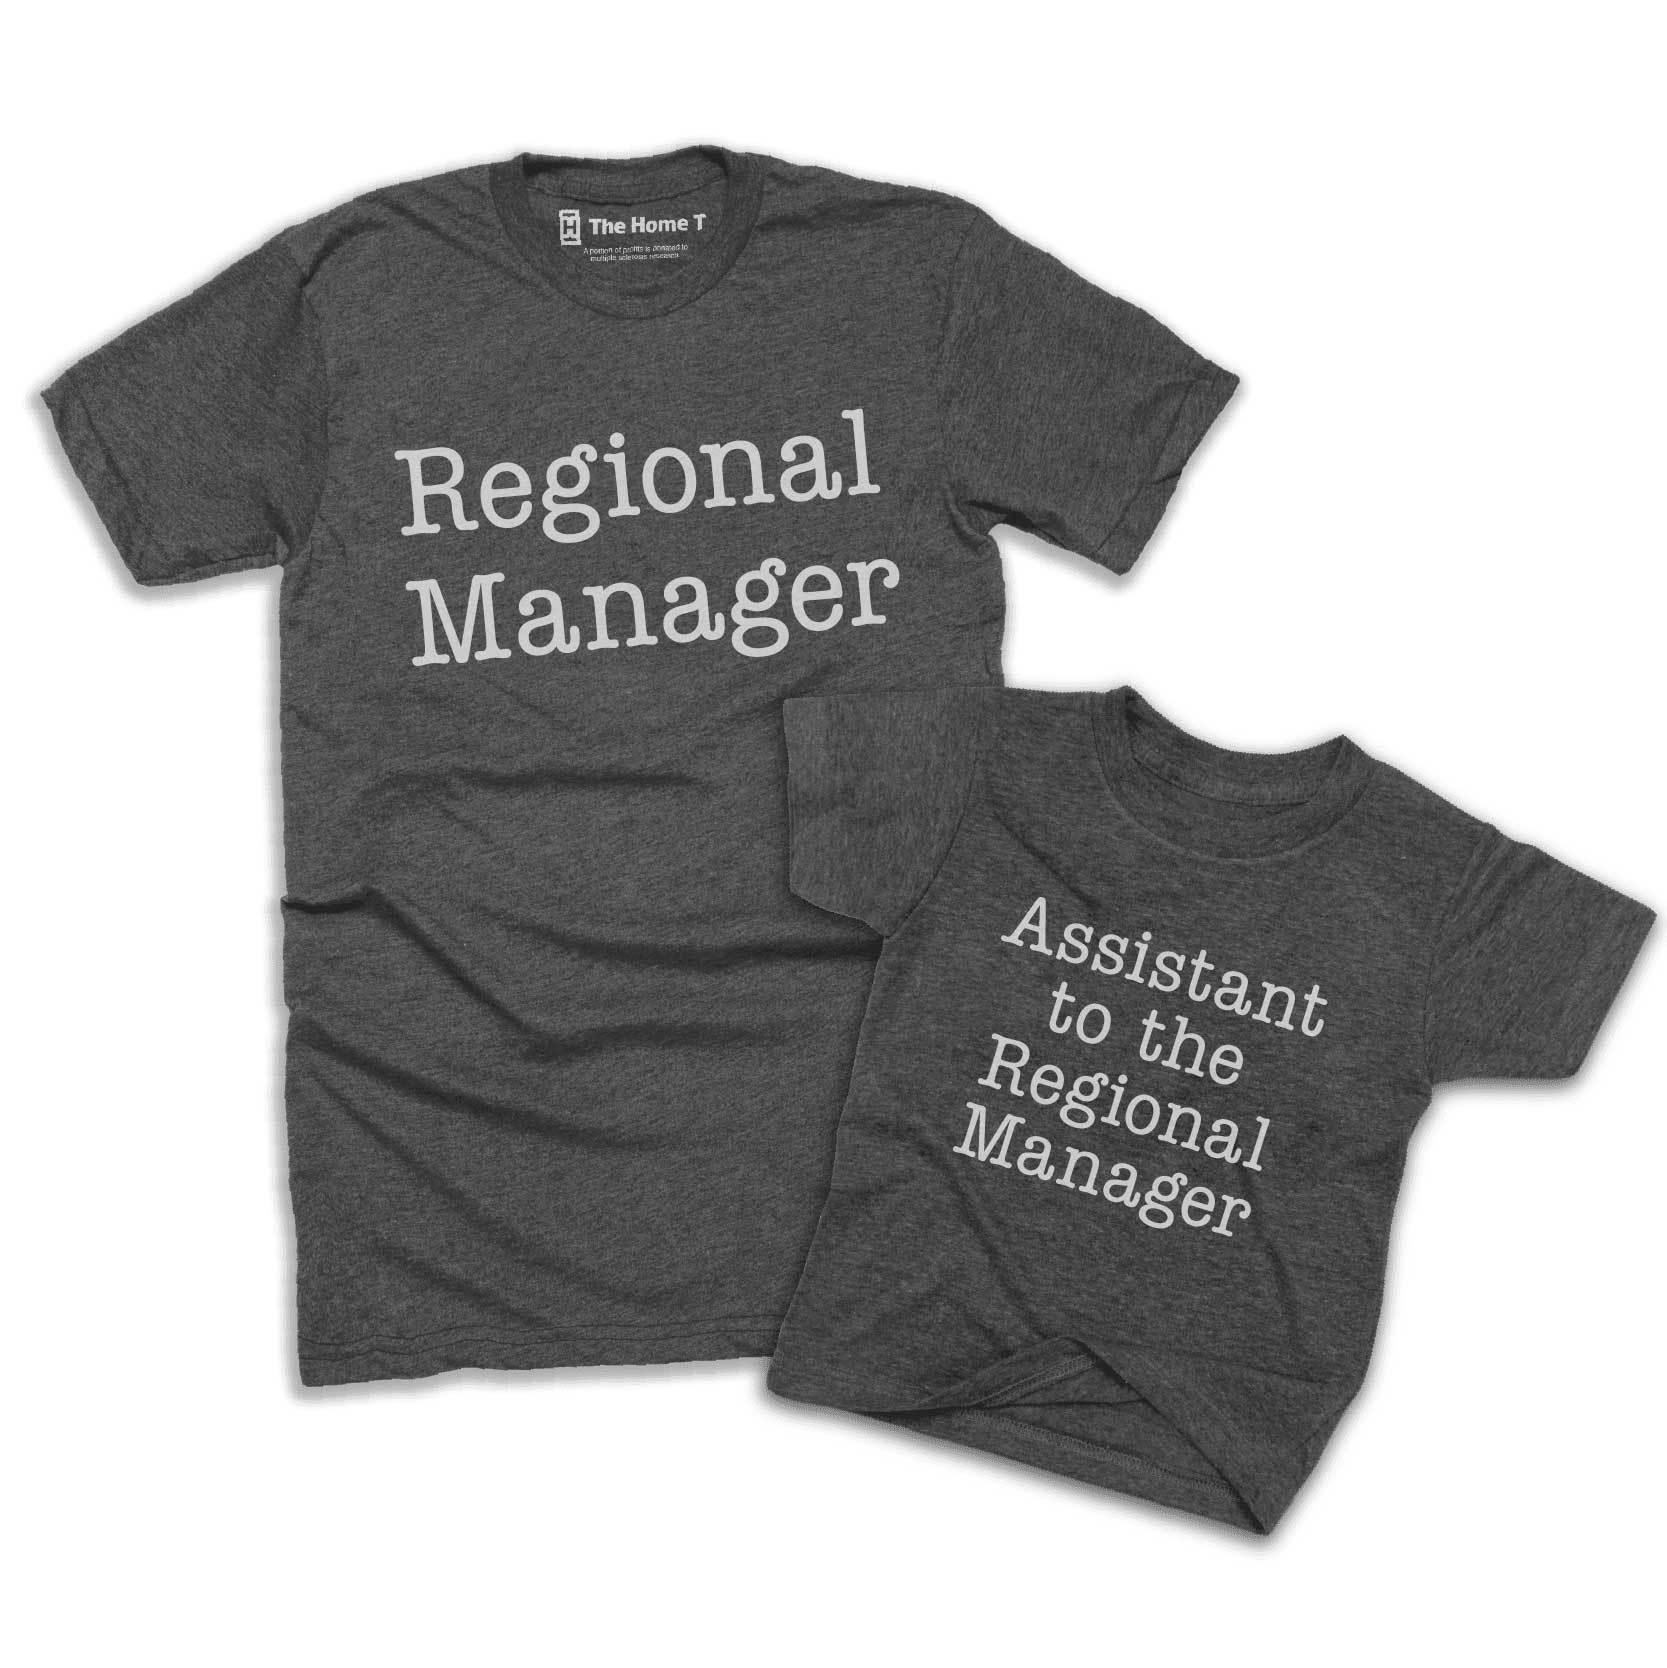 Regional Manager & Assistant to the Regional (Matching Set)